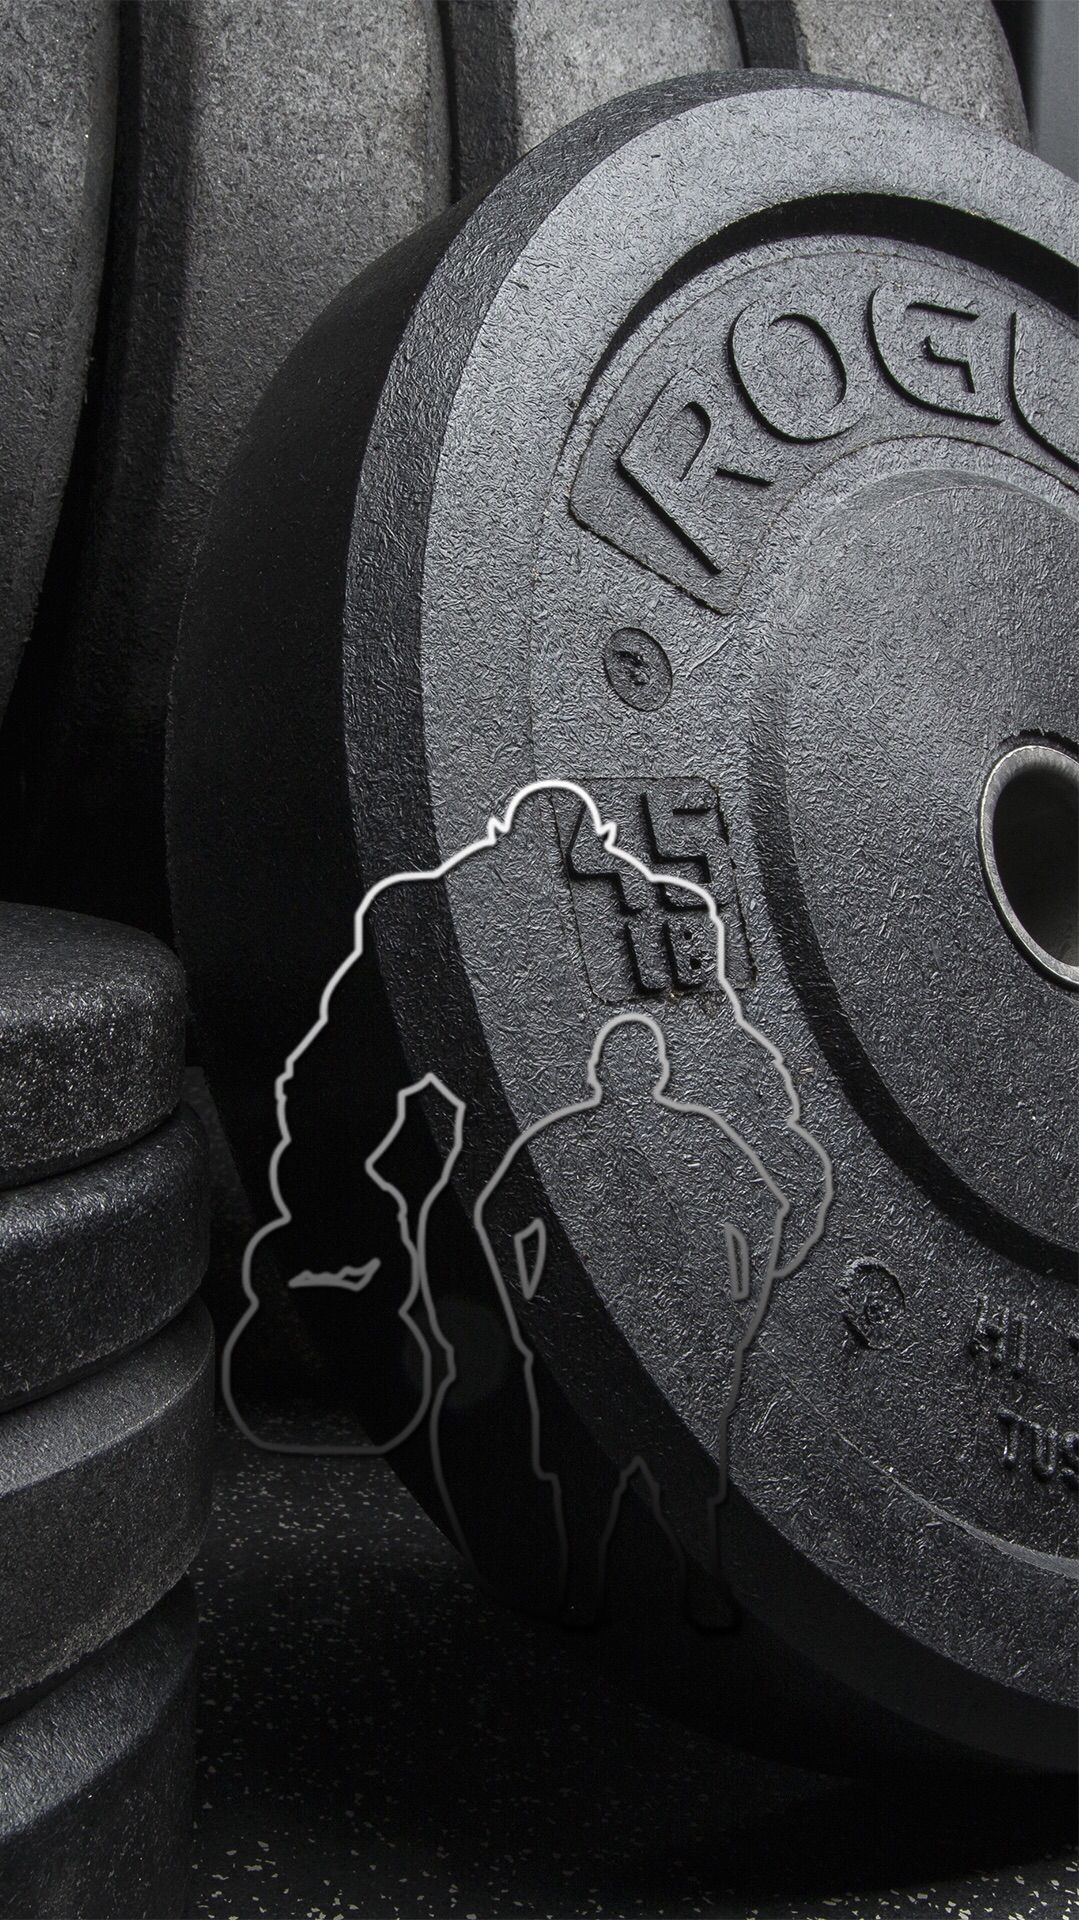 Motivational Sports Quotes Iphone Wallpaper Iphone 6 Gym Wallpaper Fat To Beast Gym Pinterest